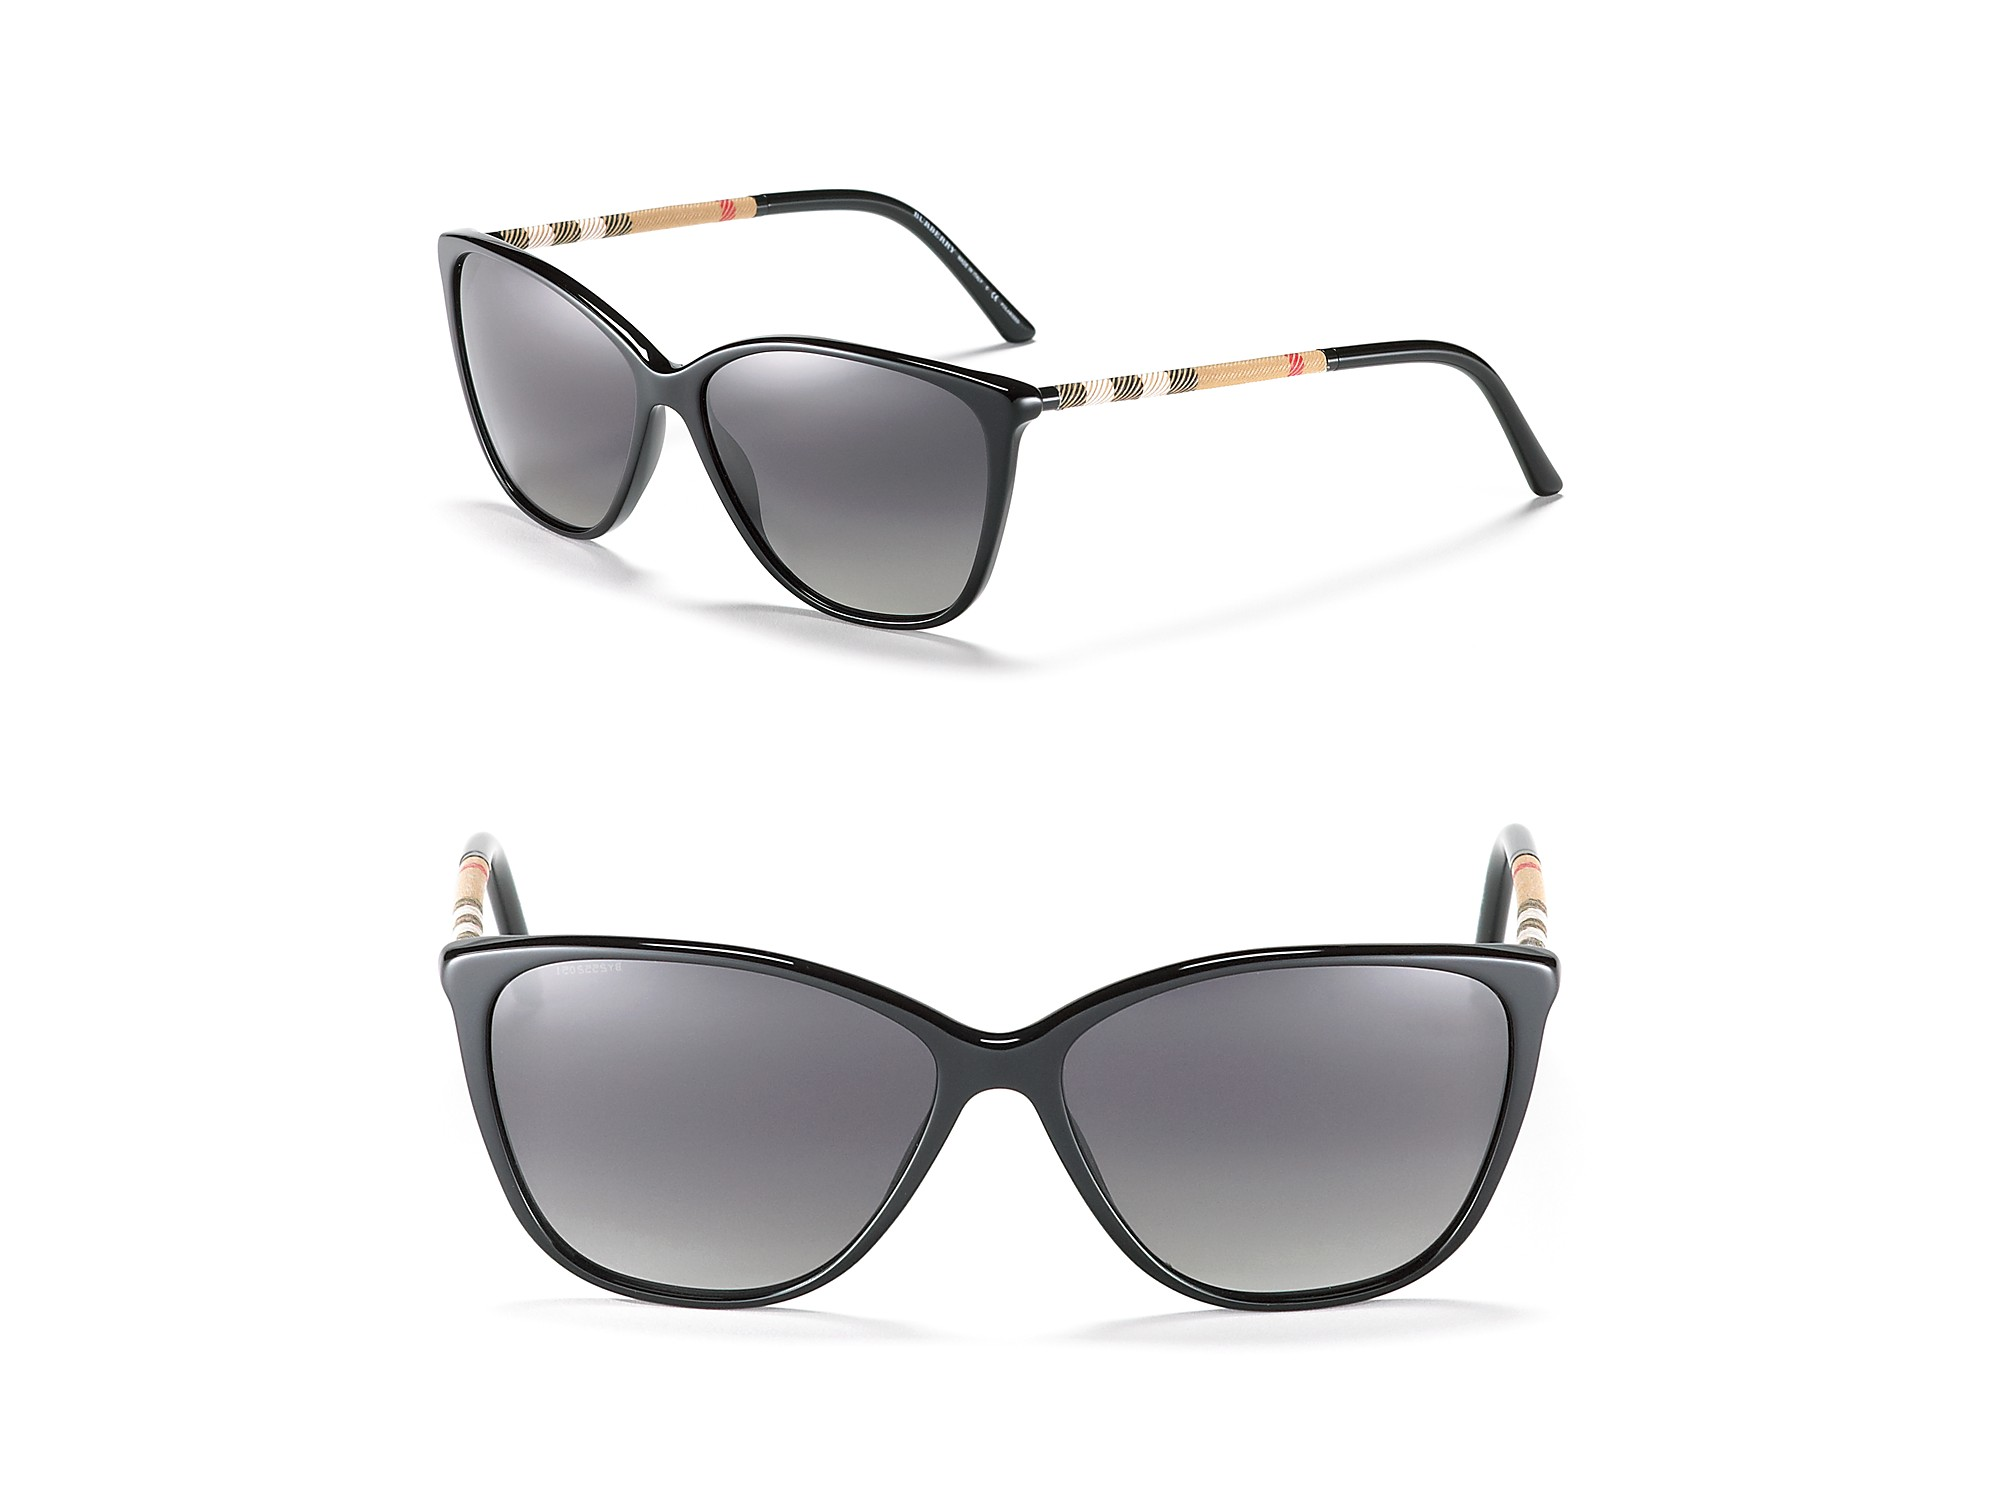 b5139ccf186 Lyst - Burberry Cat Eye Polarized Sunglasses with Check Temples in Black